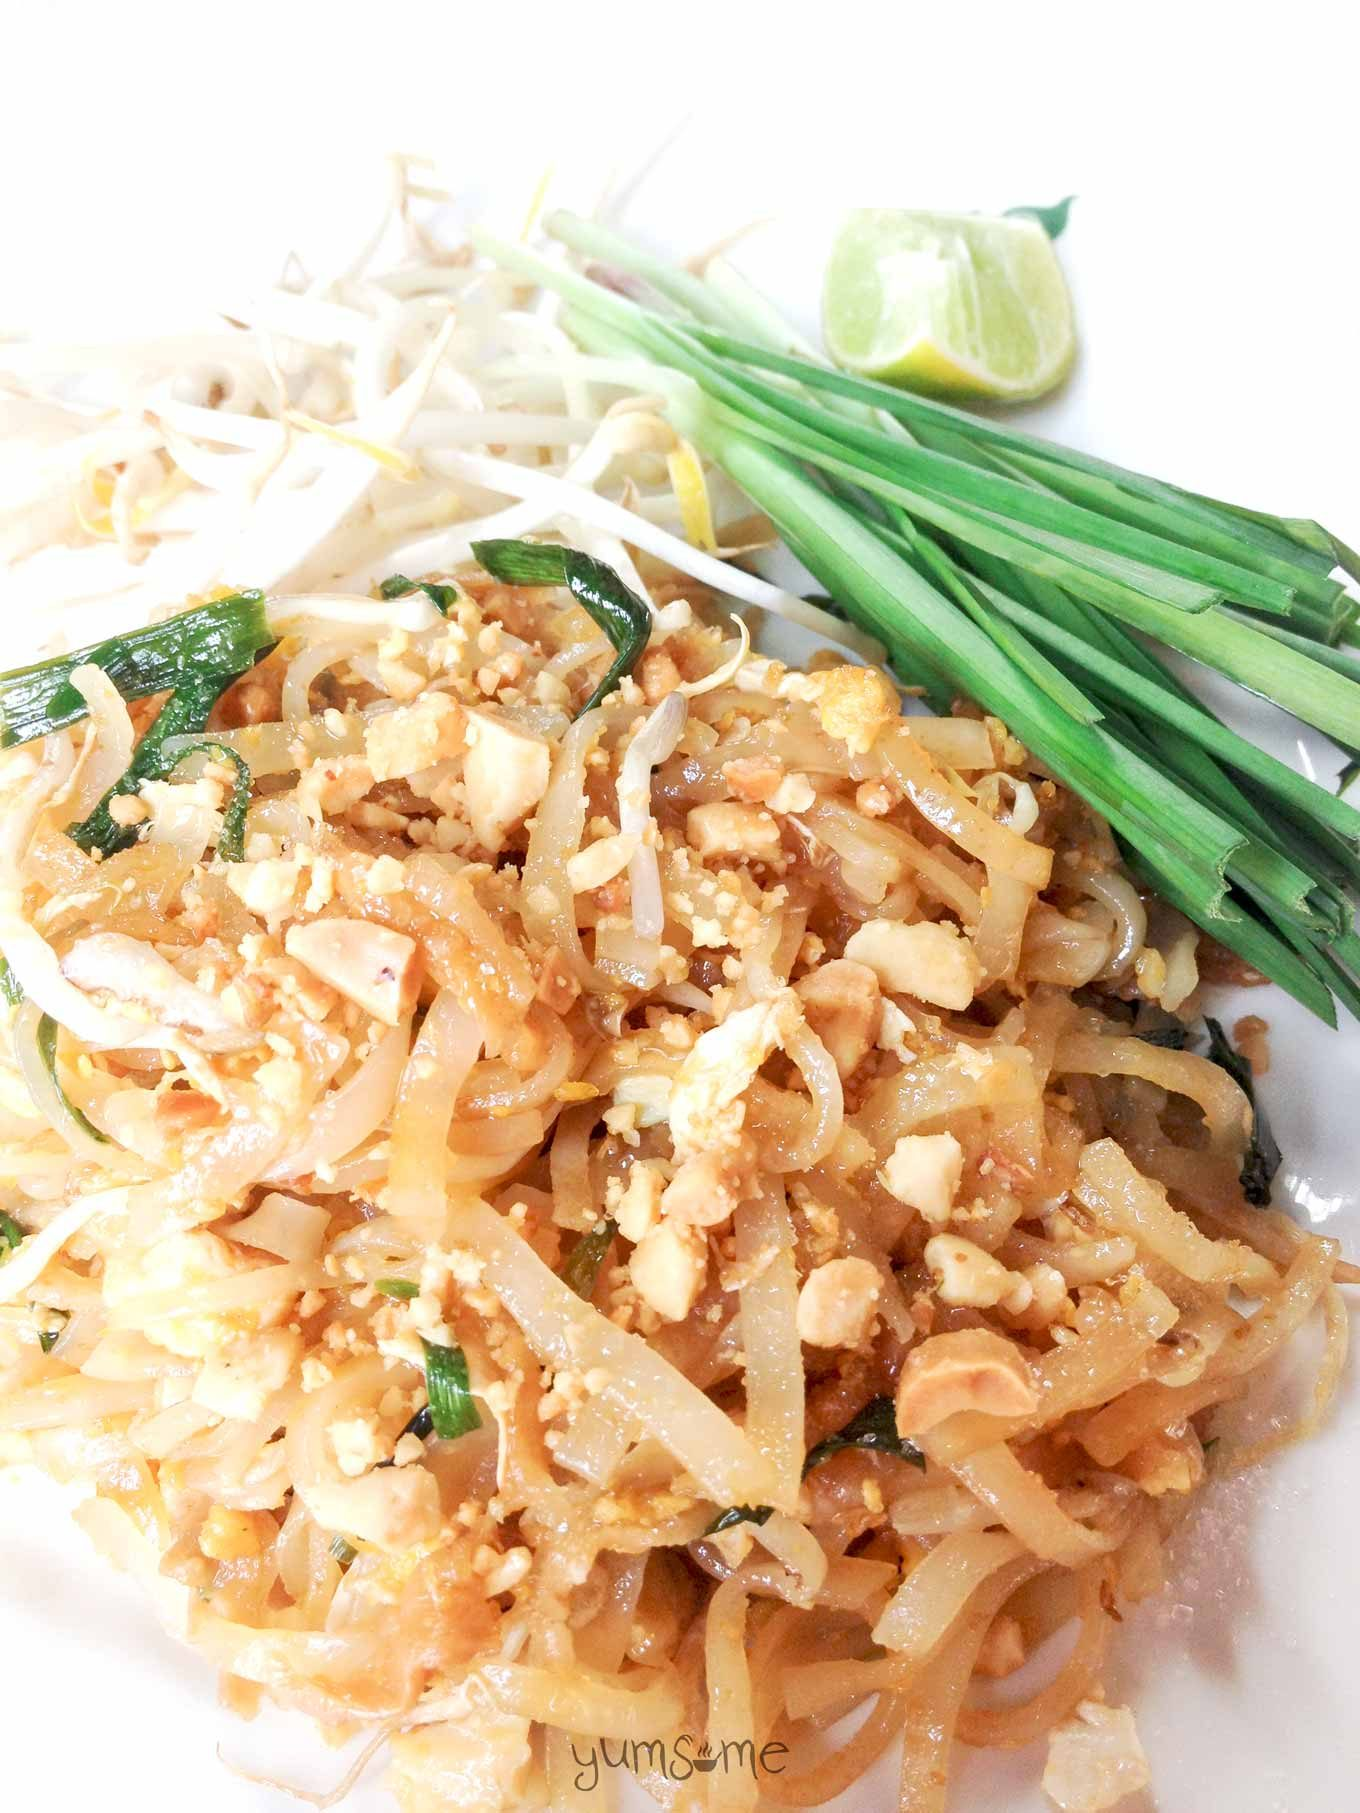 Thailand's ubiquitous fried noodle dish, phad Thai, is fast, cheap, and easy to make, and very filling. | yumsome.com